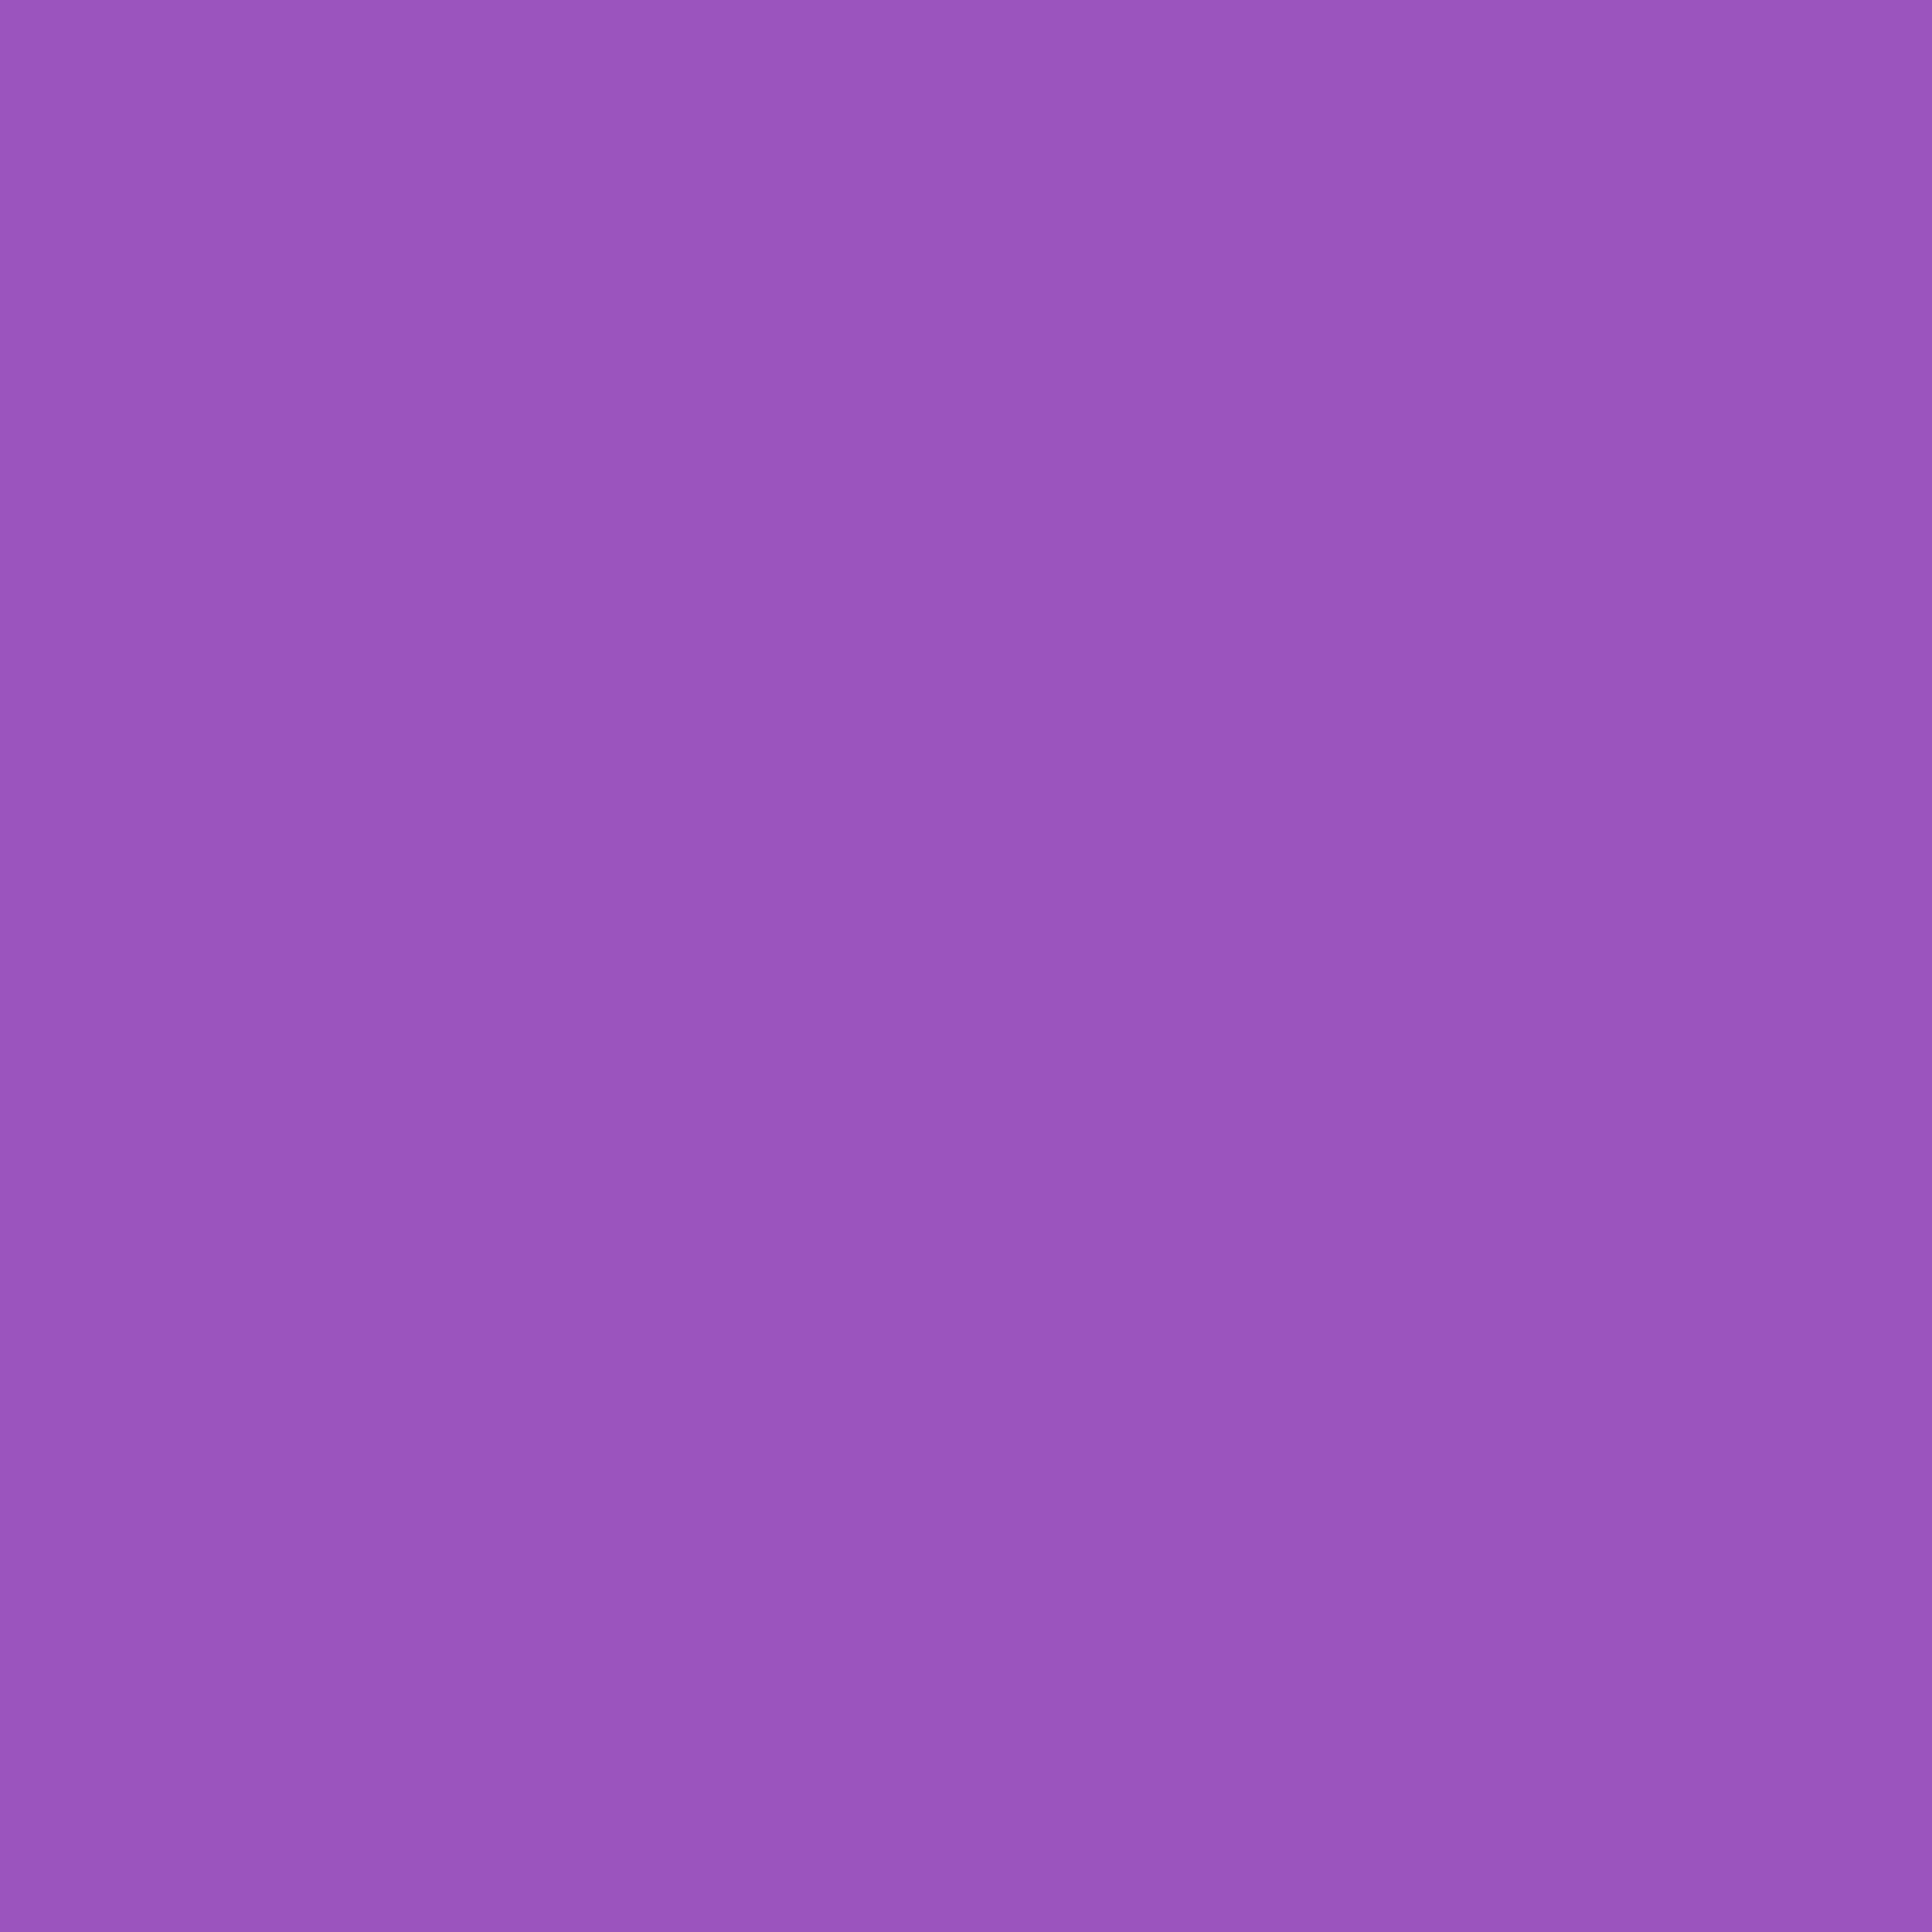 2732x2732 Deep Lilac Solid Color Background